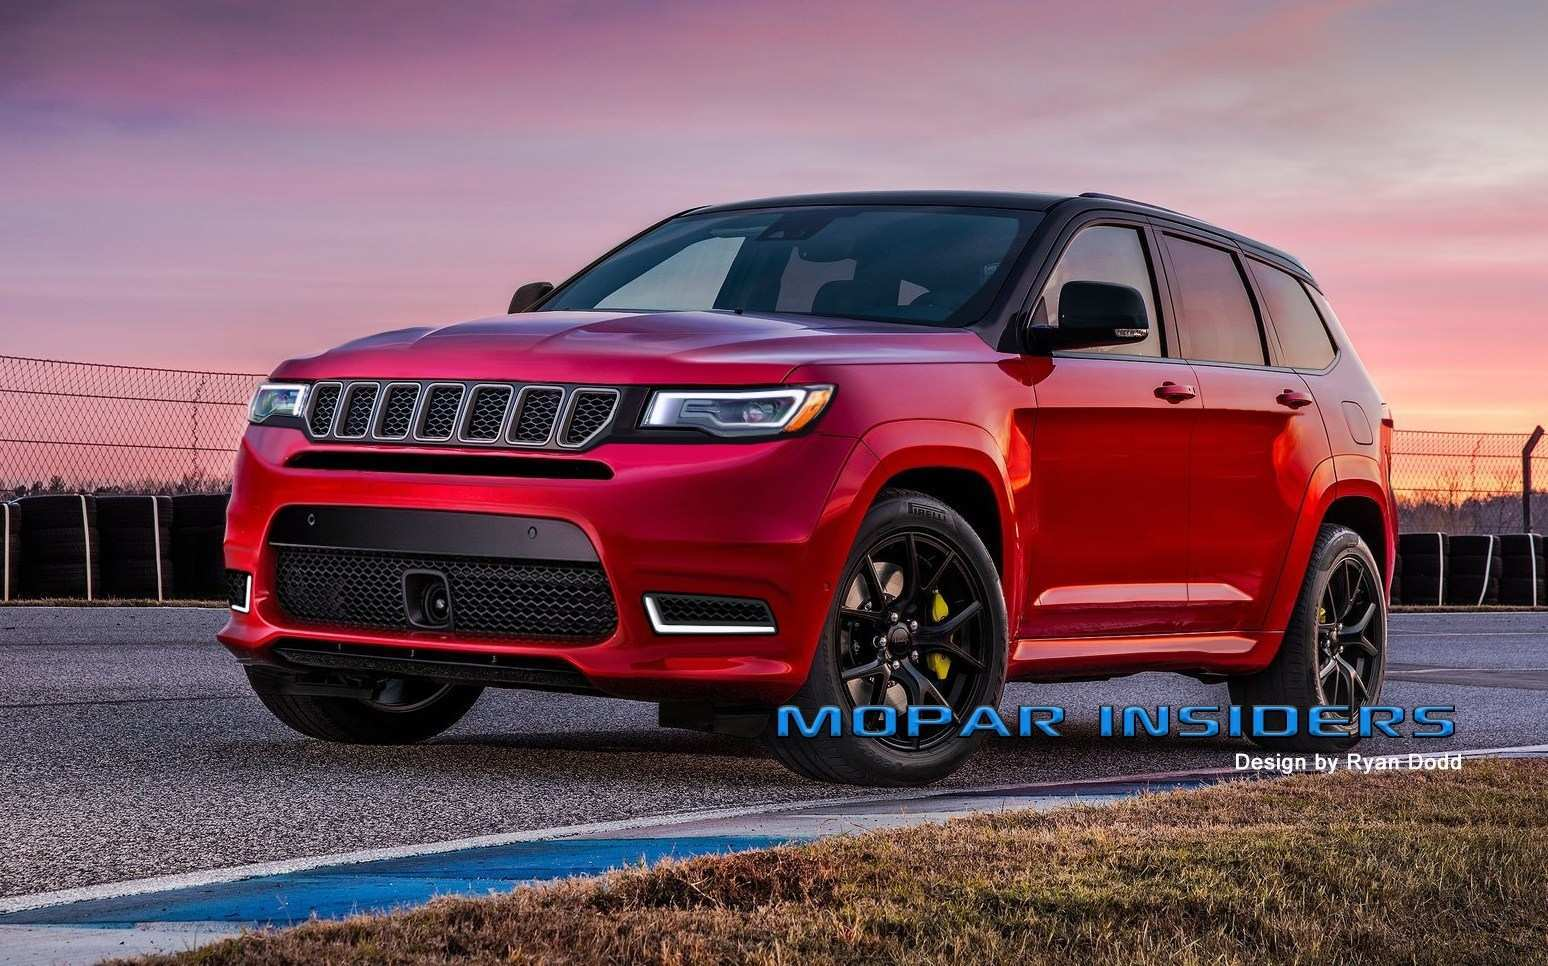 95 The Best 2020 Grand Cherokee Srt Hellcat Review And Release Date